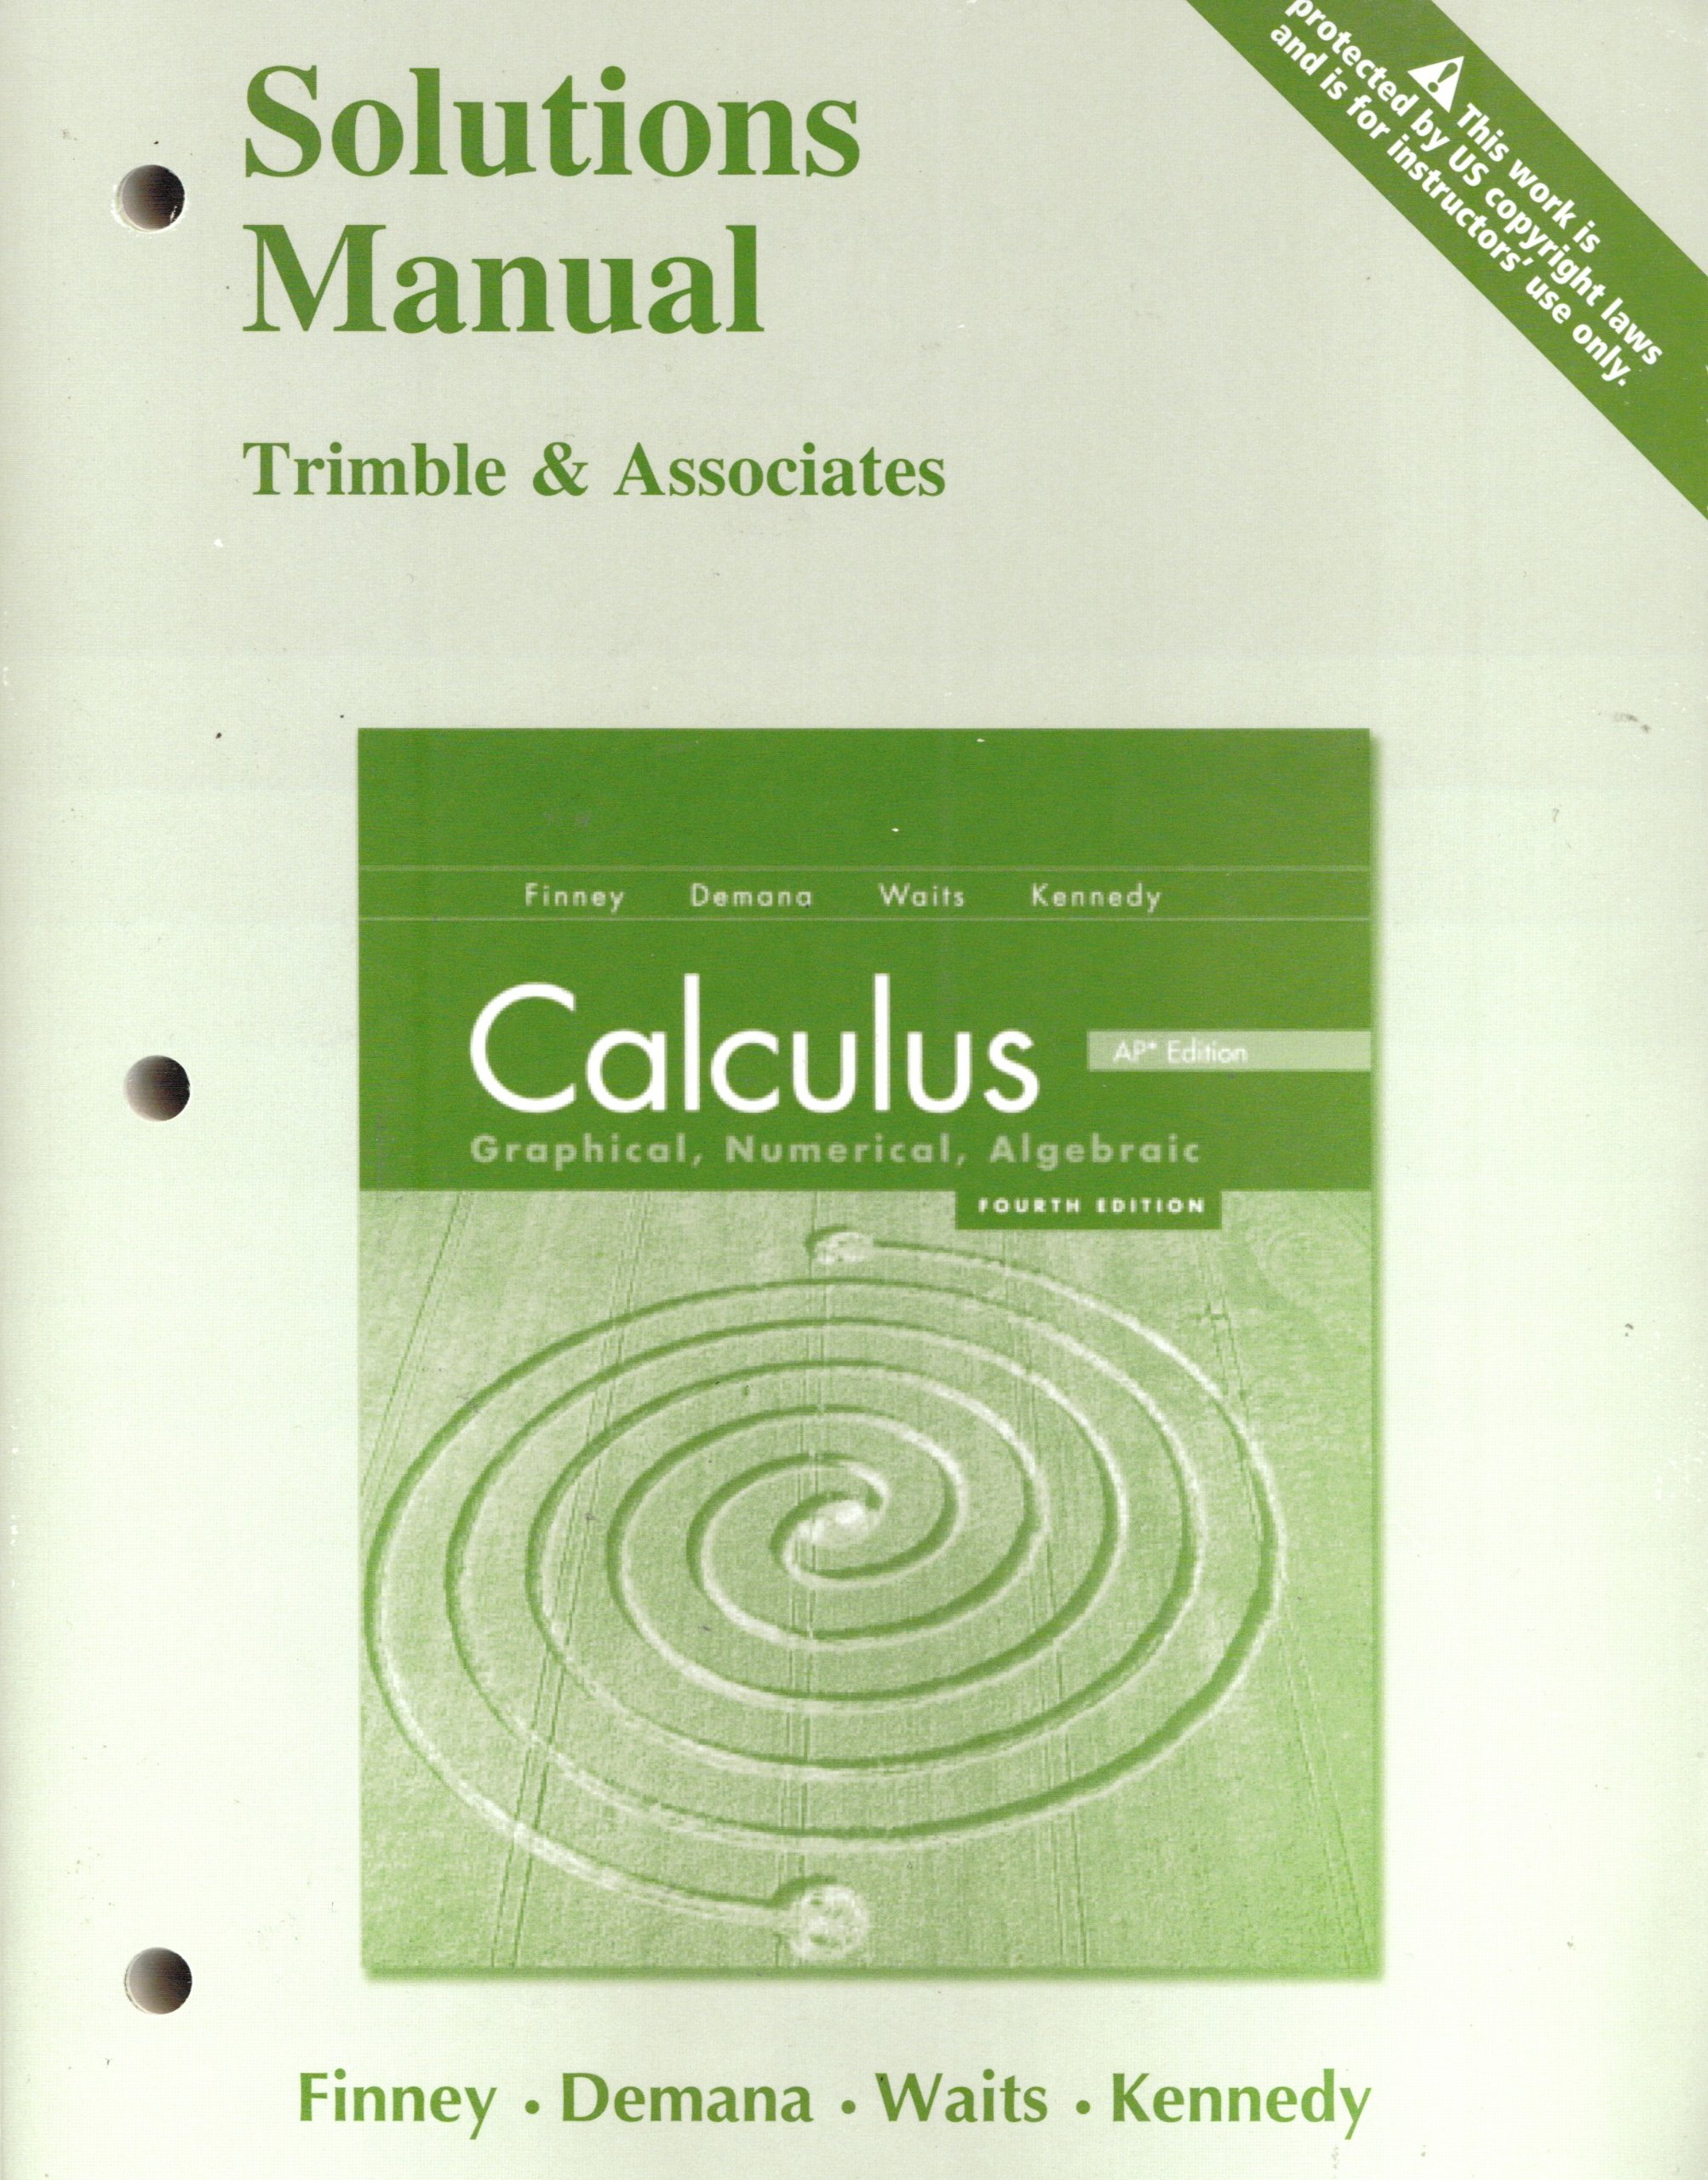 Calculus: Graphical, Numerical, Algebraic Solutions Manual: Finney:  9780133179231: Amazon.com: Books